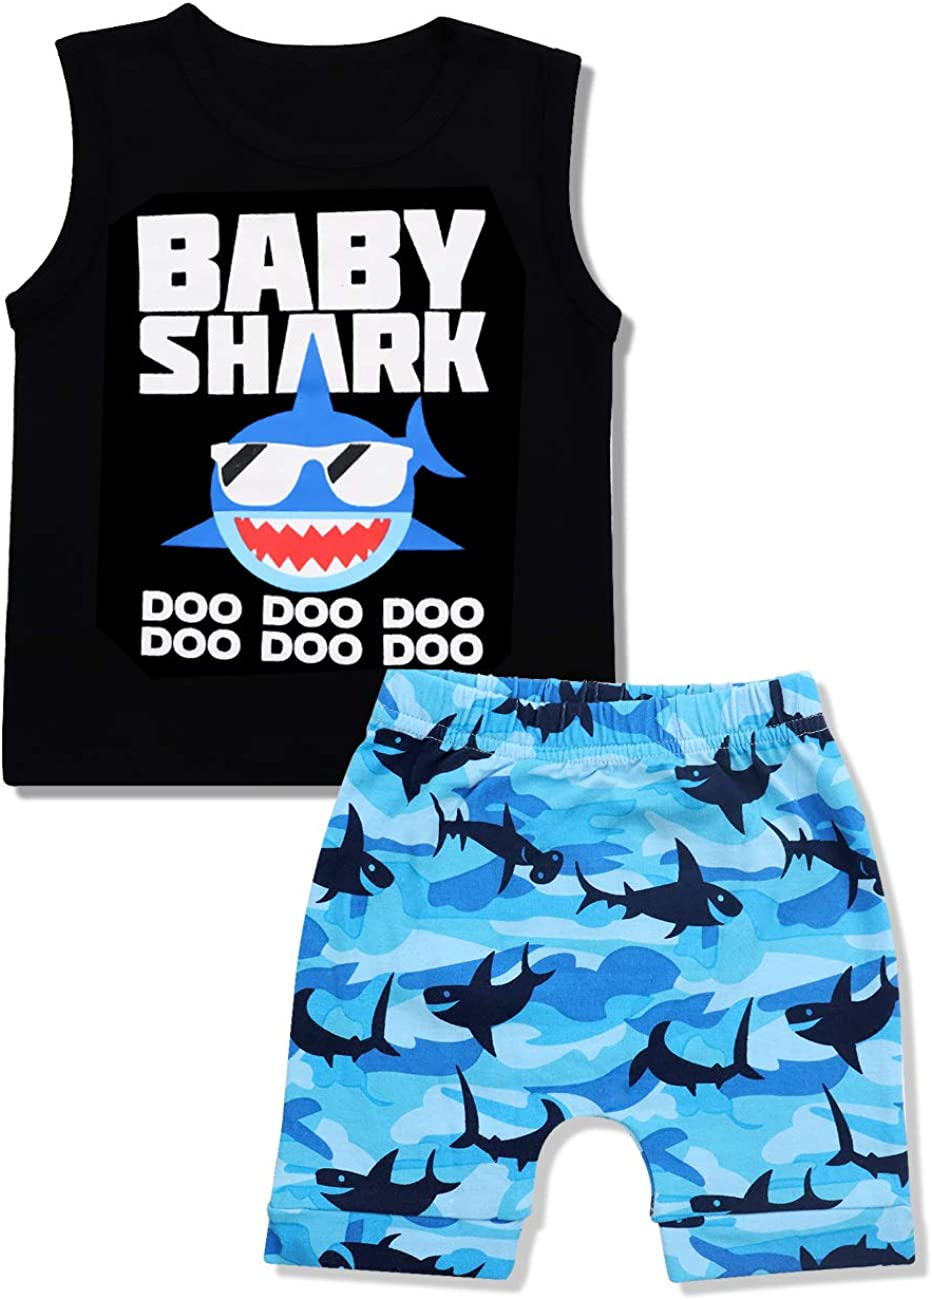 Baby Boy Clothes Shark Doo Doo Doo Print Summer Cotton Sleeveless Outfits Set Tops + Short Pants